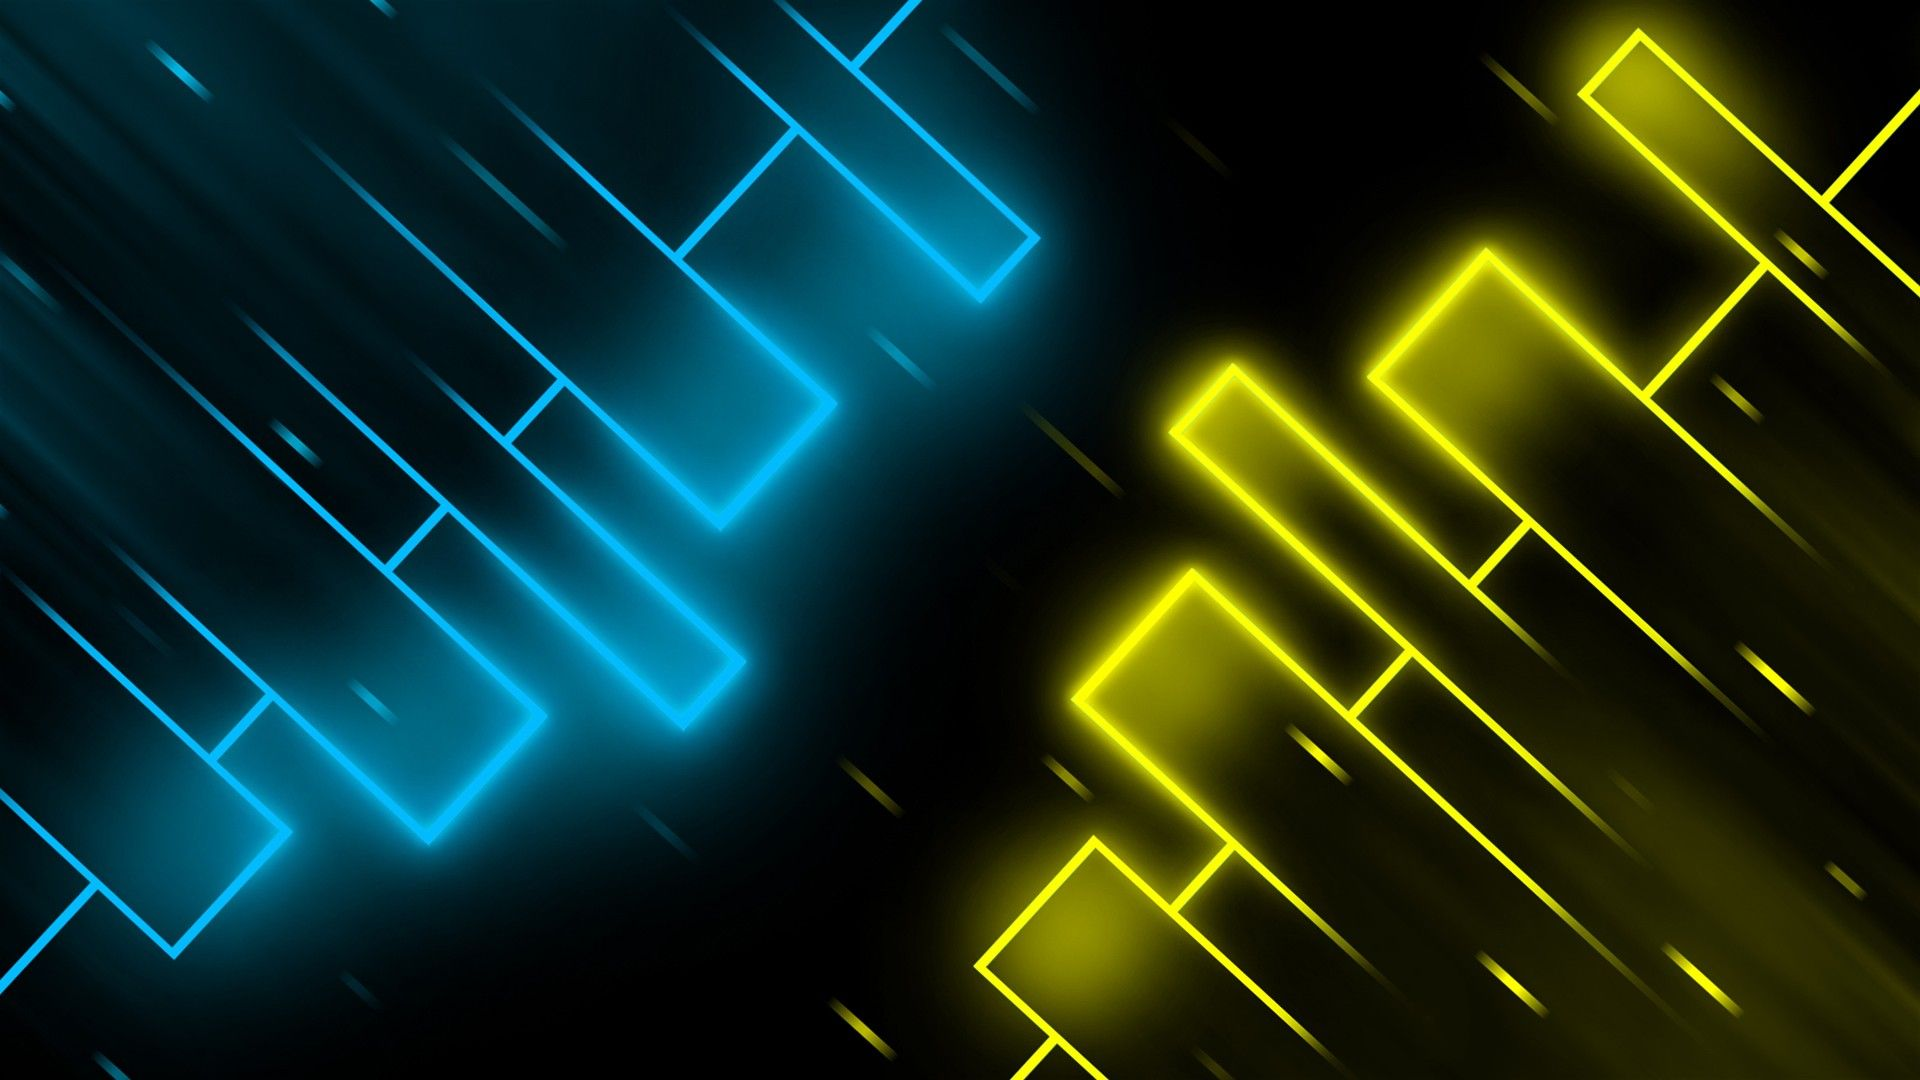 Abstract Wallpaper Abstrakte Tapete Wallpapers Android Abstrakt